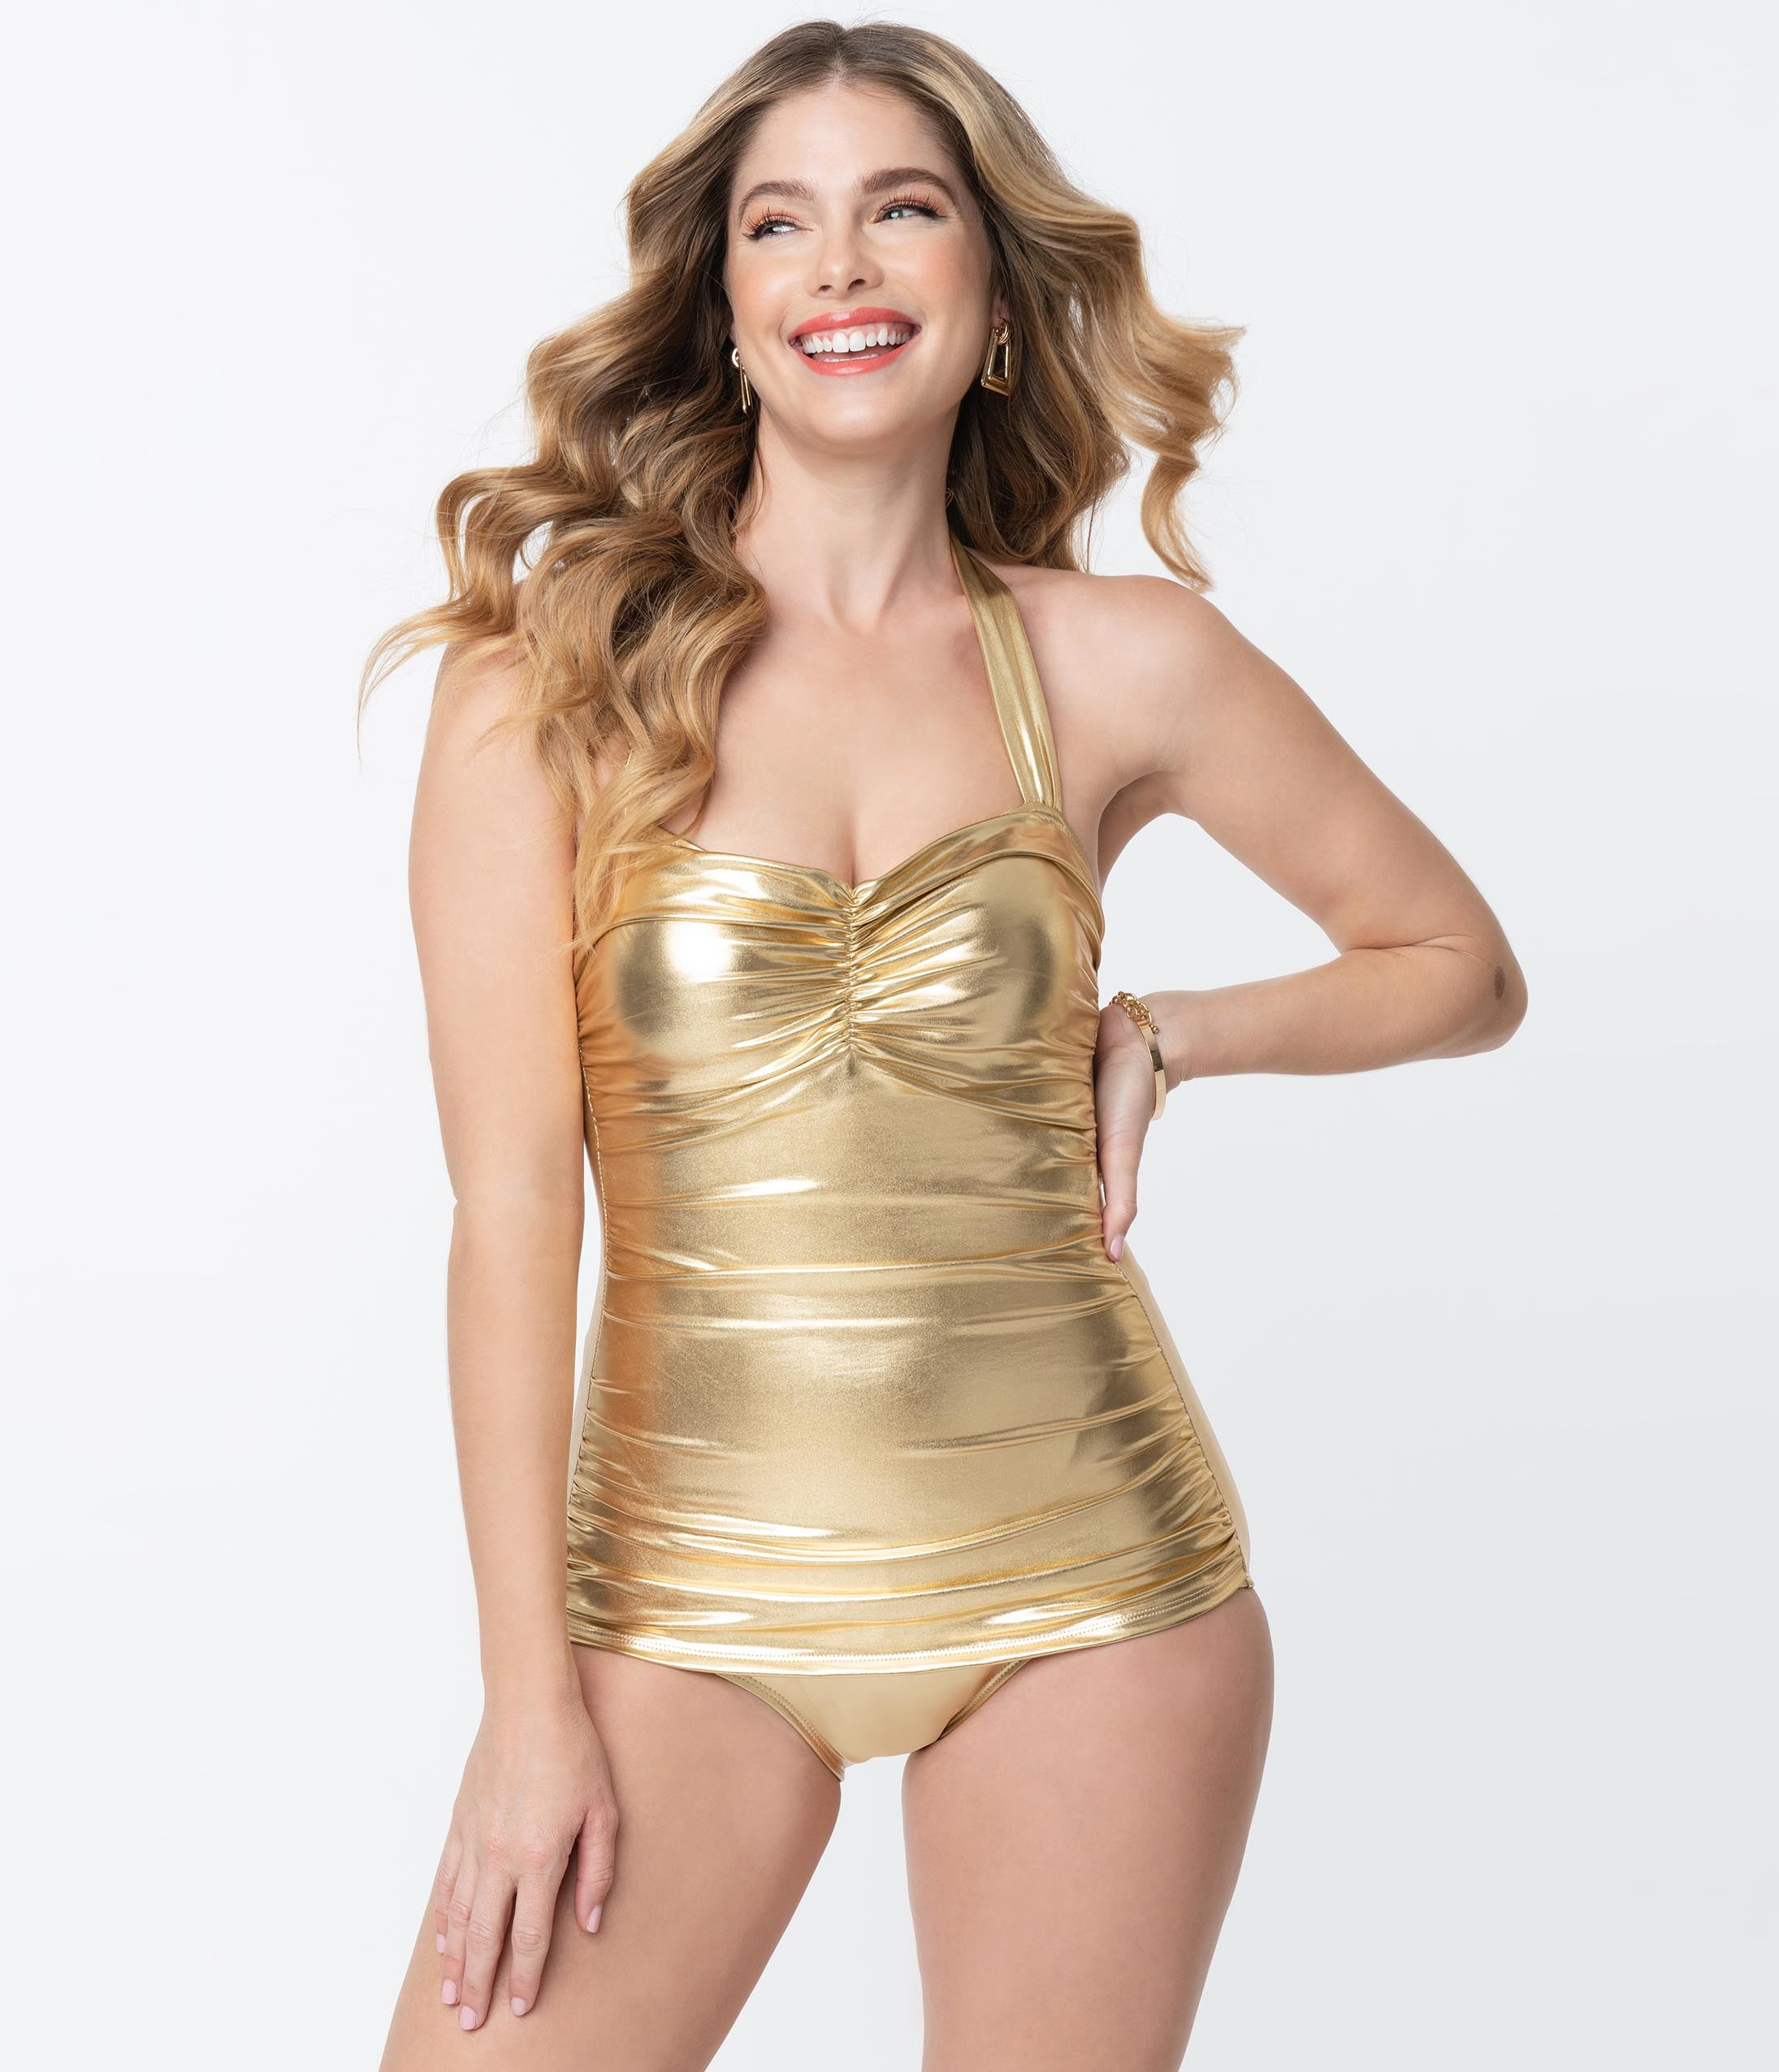 60s Swimsuits, 70s Bathing Suits | Retro Swimwear Esther Williams Vintage Style Gold Glitz Sheath Swimsuit $88.00 AT vintagedancer.com